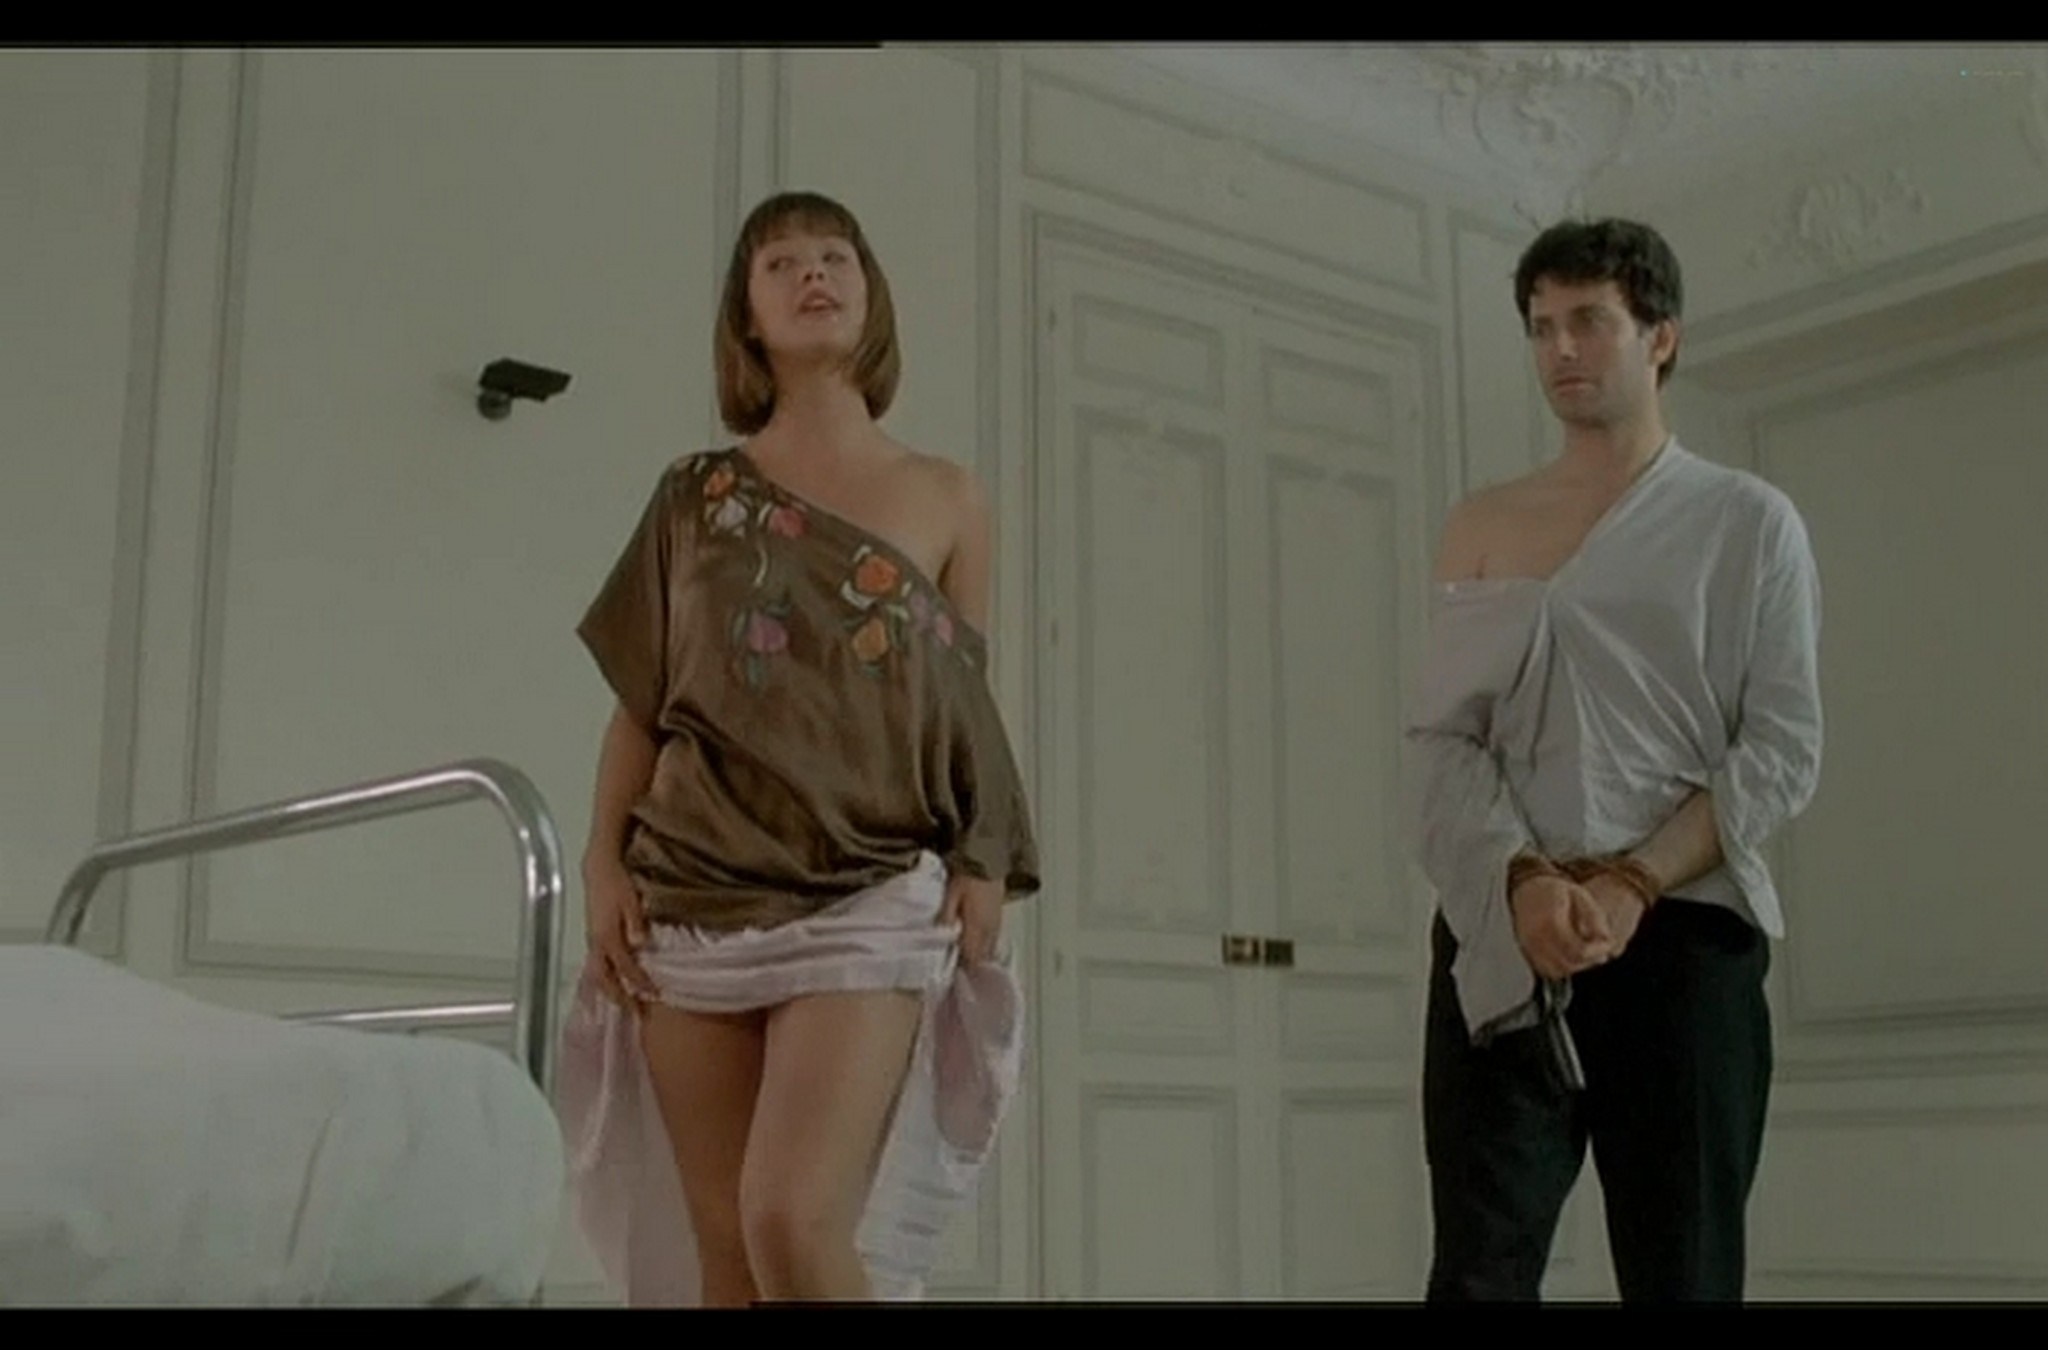 Sophie Marceau nude full frontal Christiane Jean nude too Lamour braque FR 1985 DvDrip 010